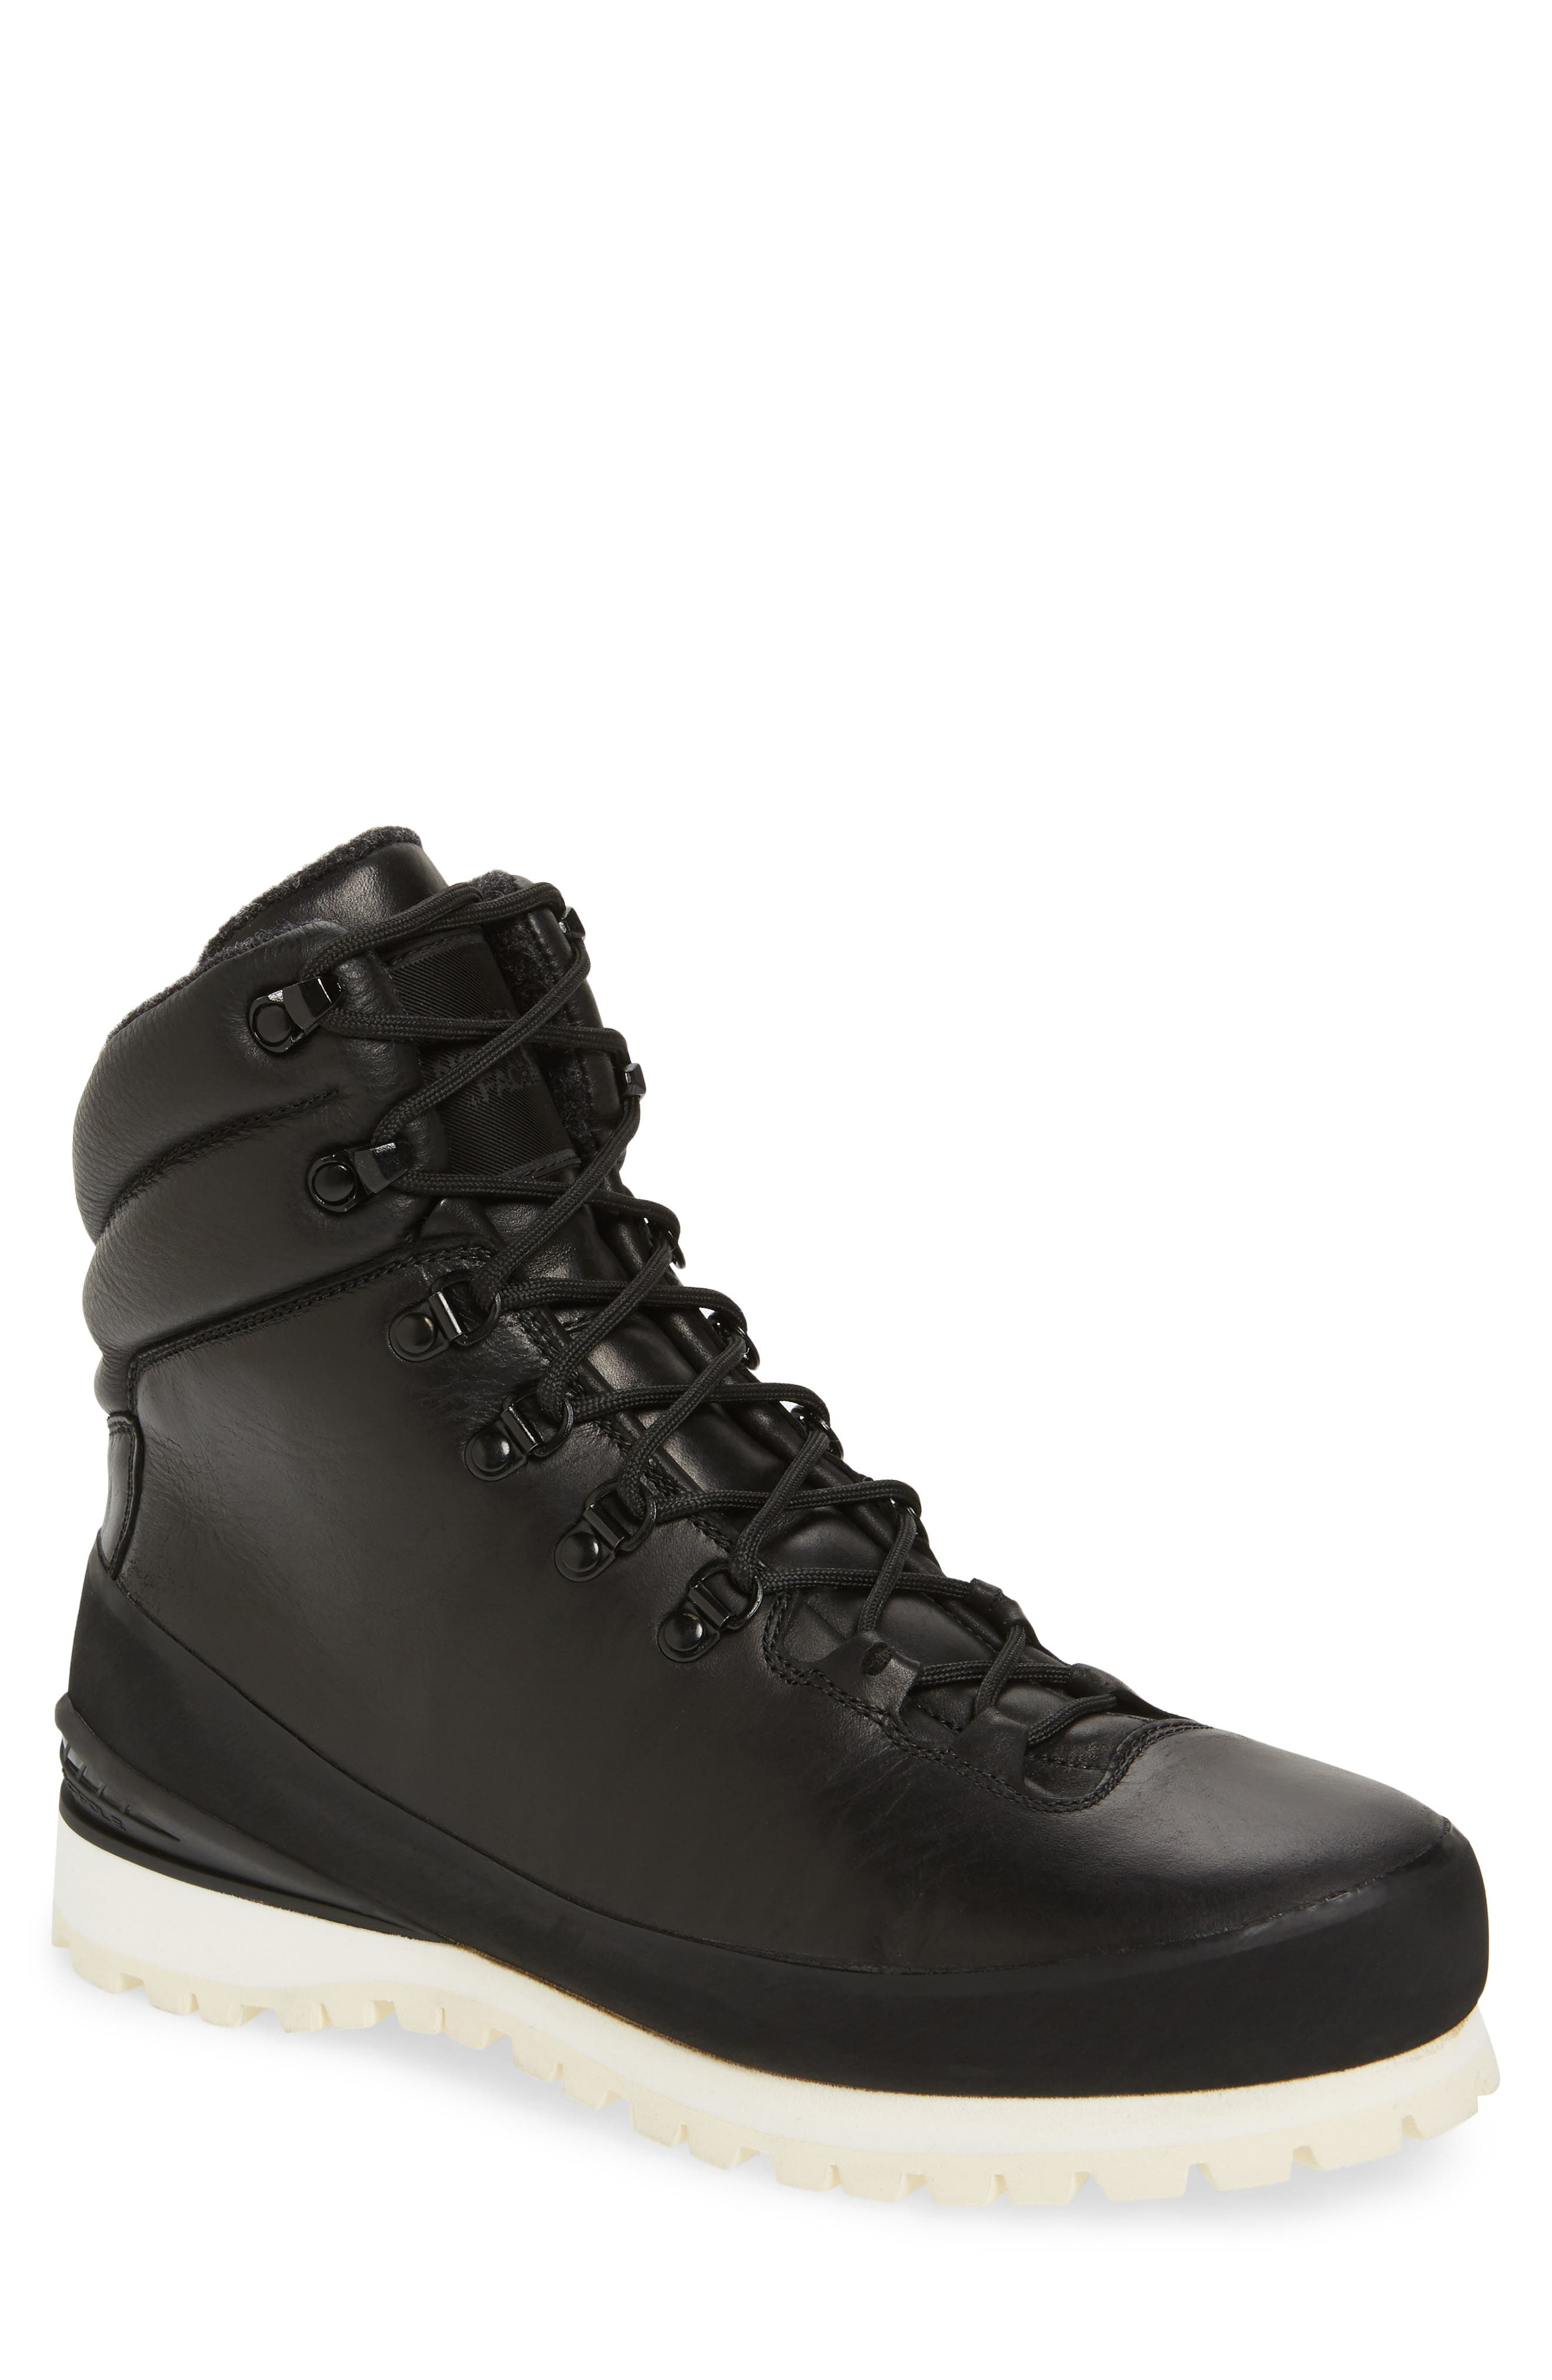 Alternate Image 1 Selected - The North Face Cryos Hiker Boot (Men)